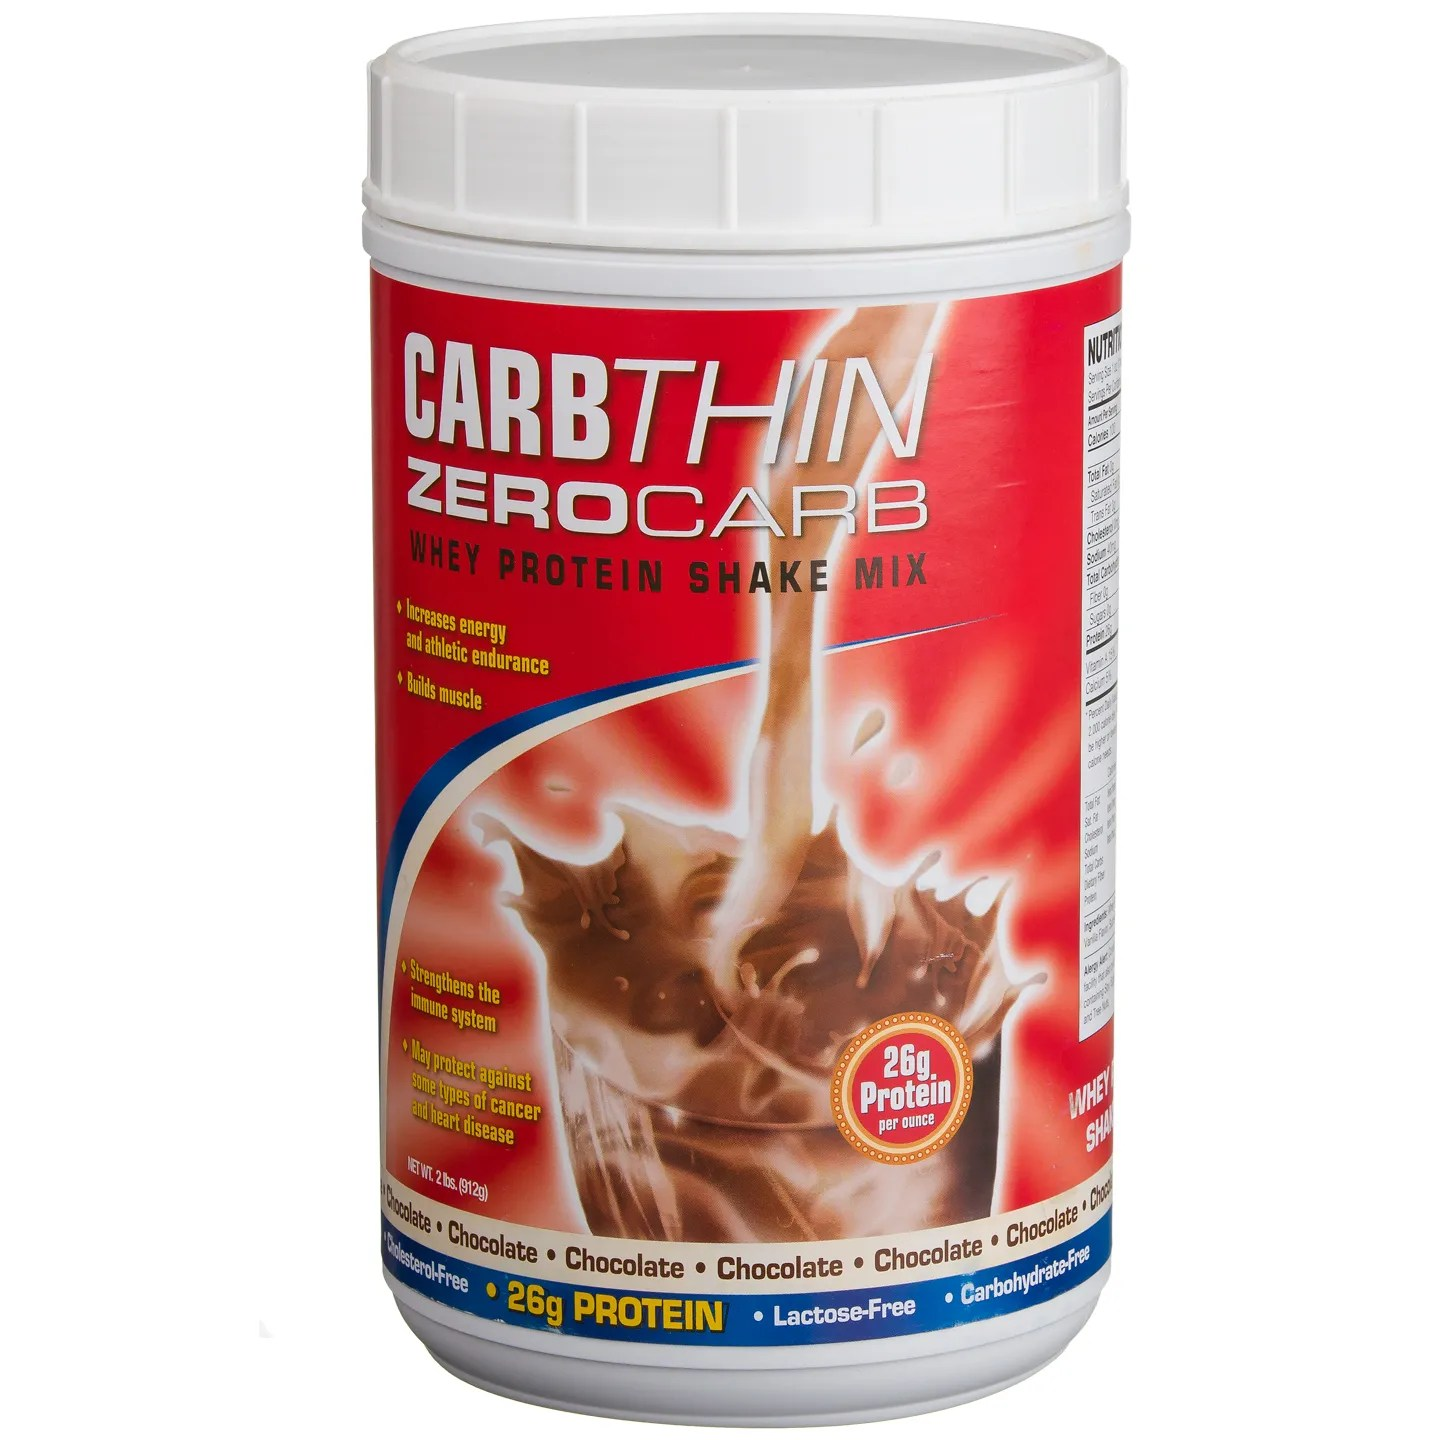 CarbThin Zero Carb Whey Protein Shake Mix